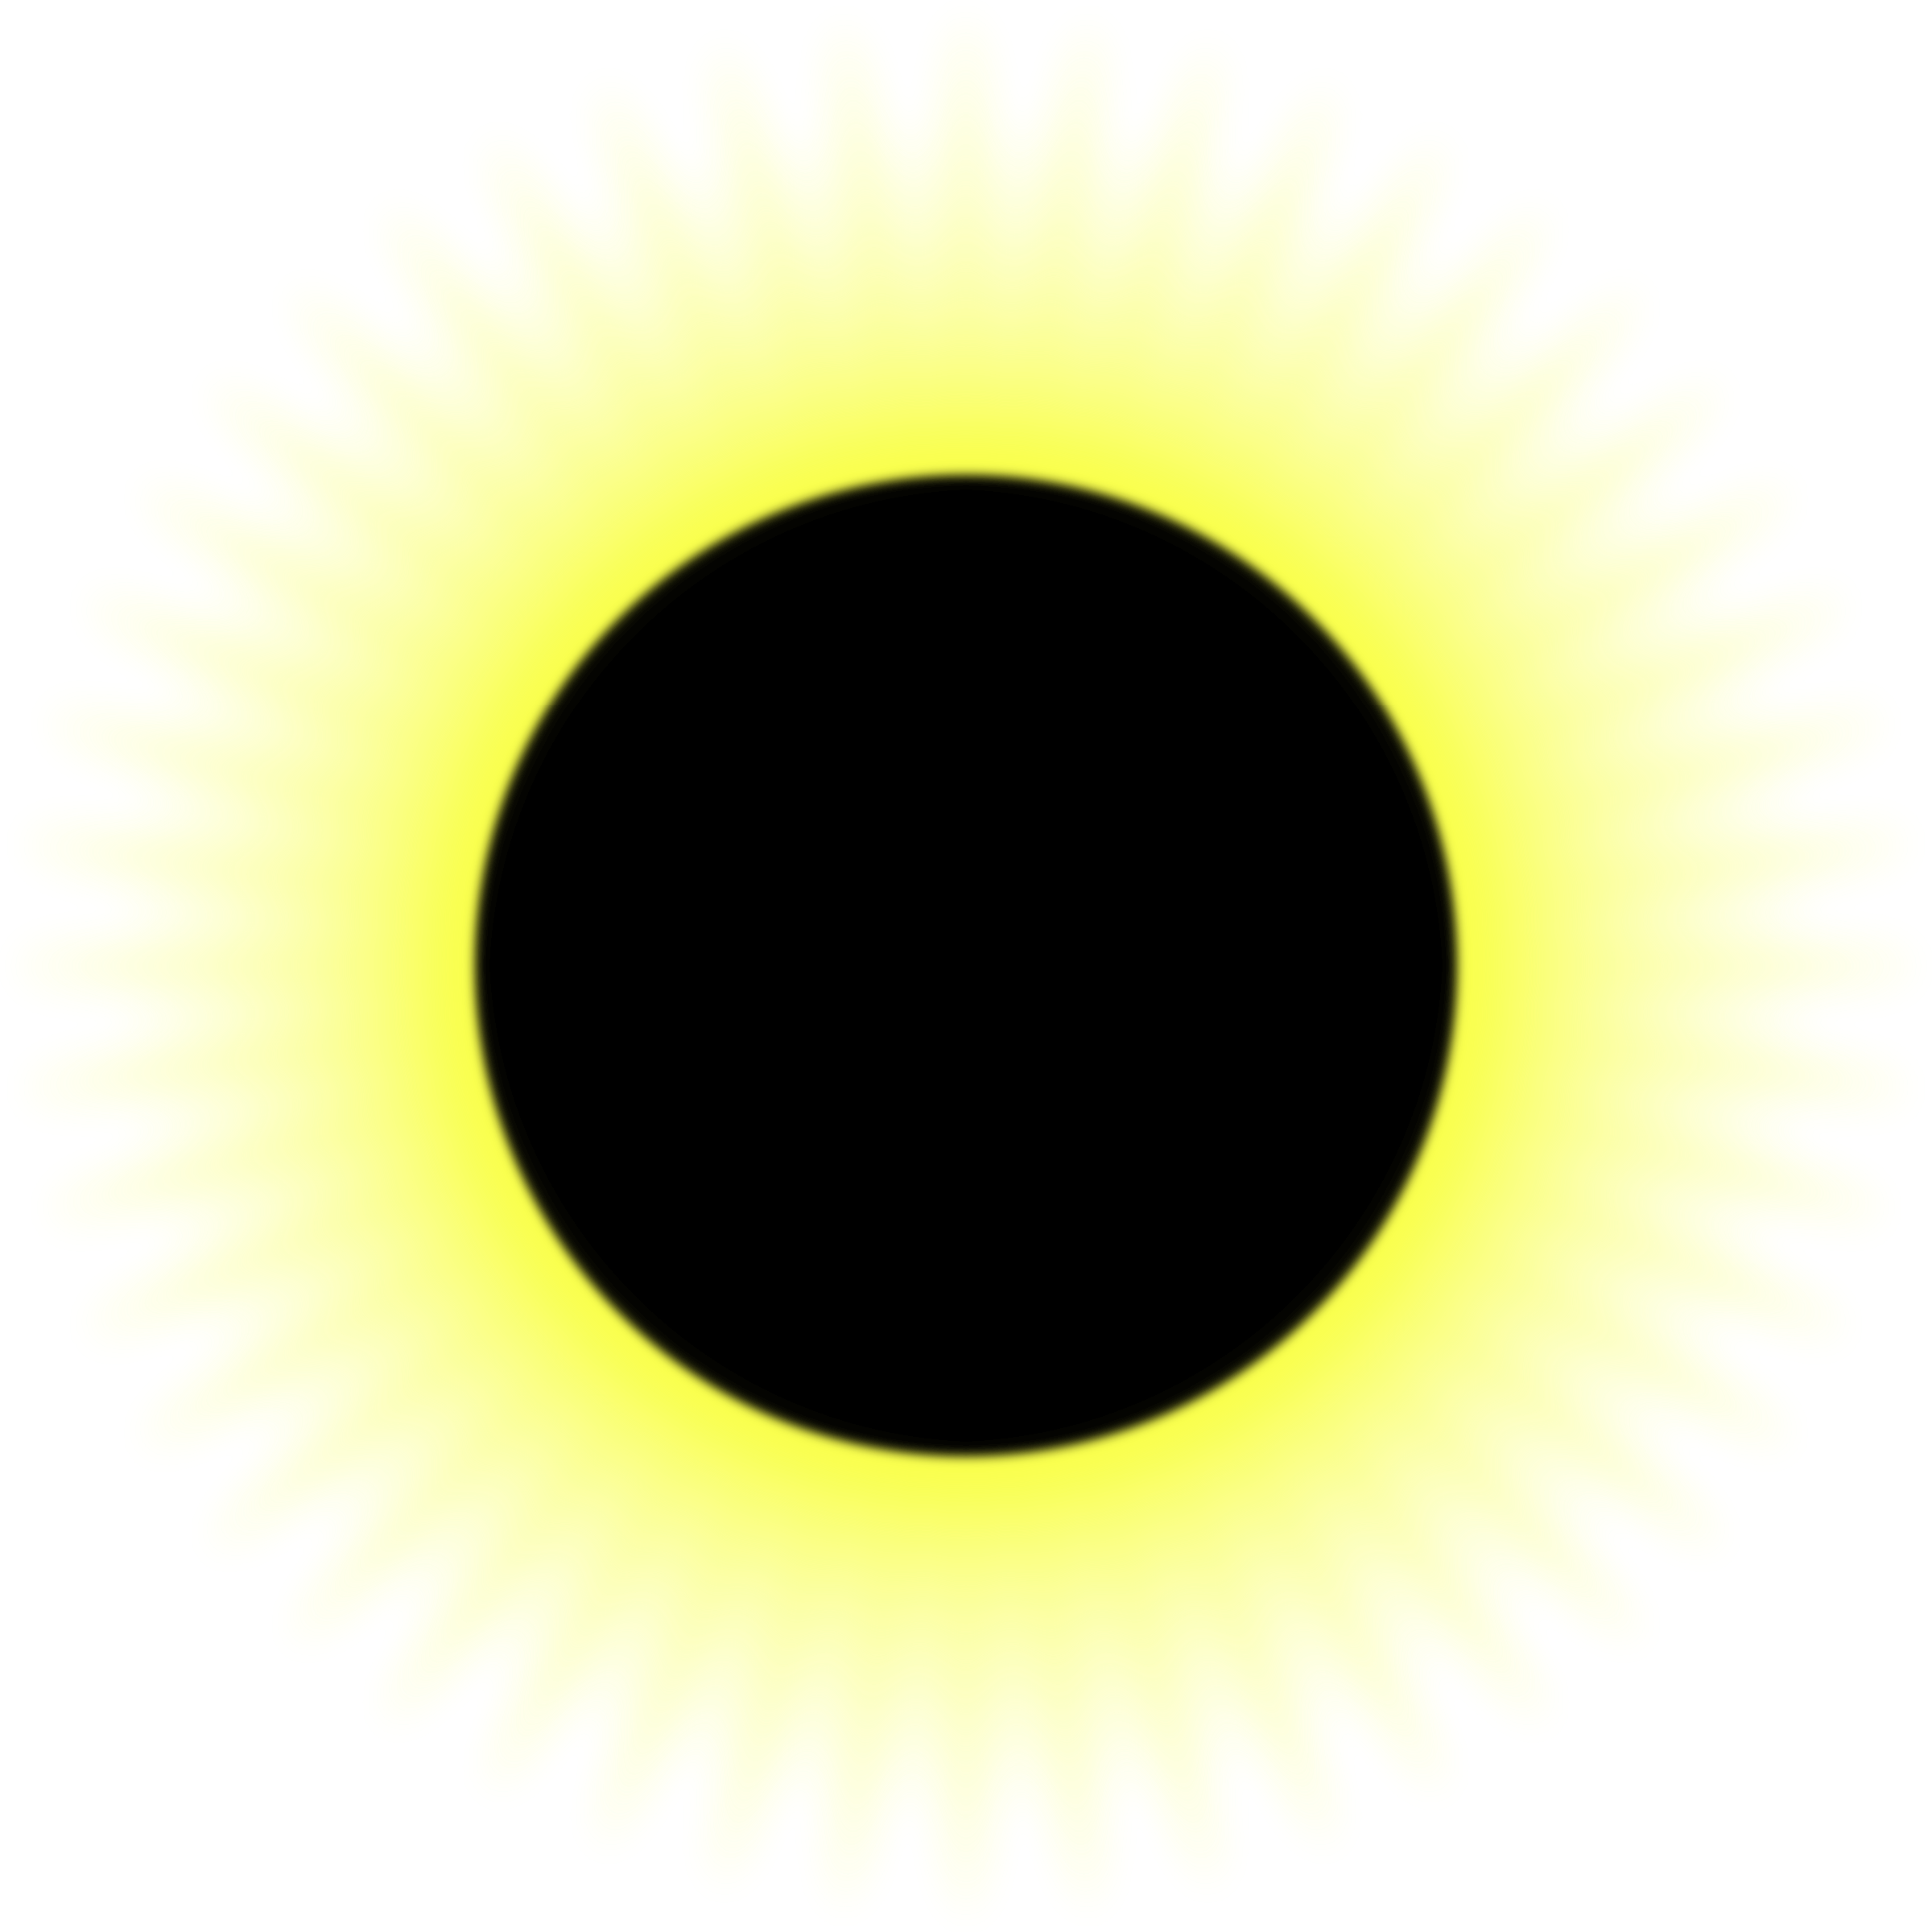 Solar eclipse icons png. Eclipsing sun clipart